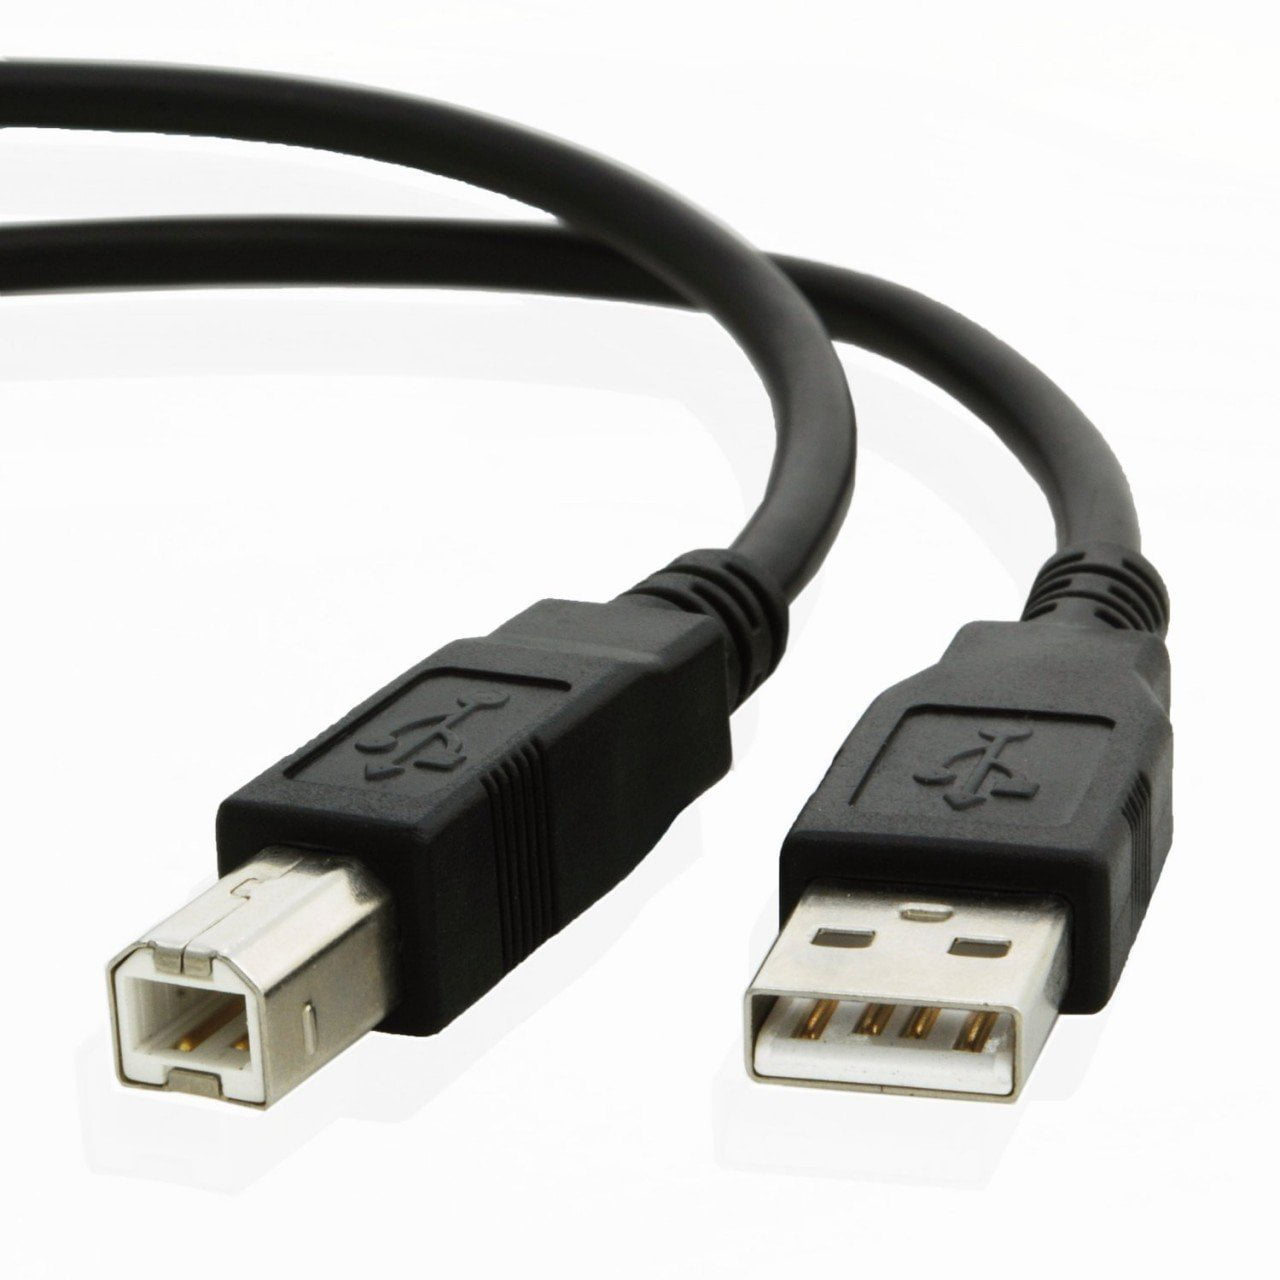 New USB Cable Wire Cord Plug for Epson Printer CHOOSE WORKFORCE MODEL INSIDE